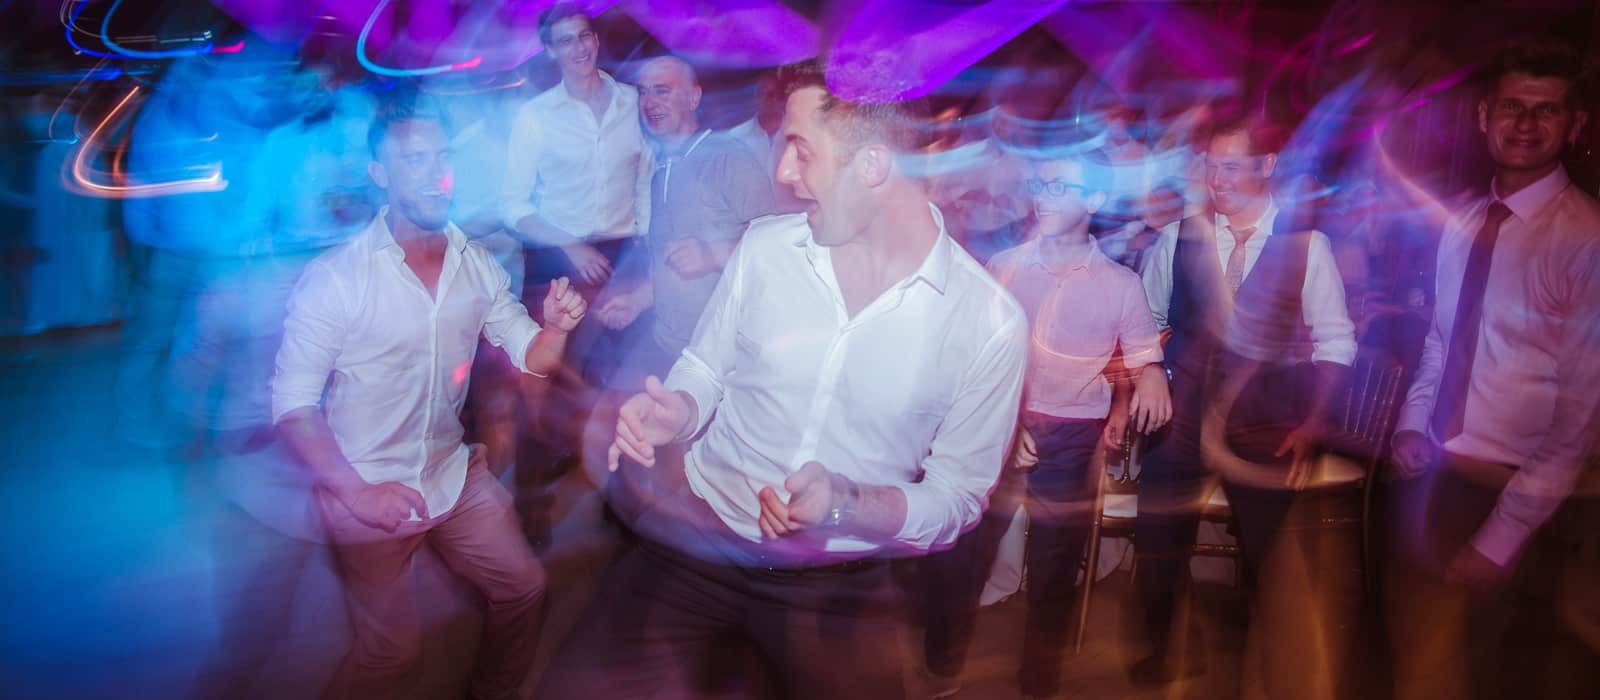 Guest dancing in a wedding band in spain